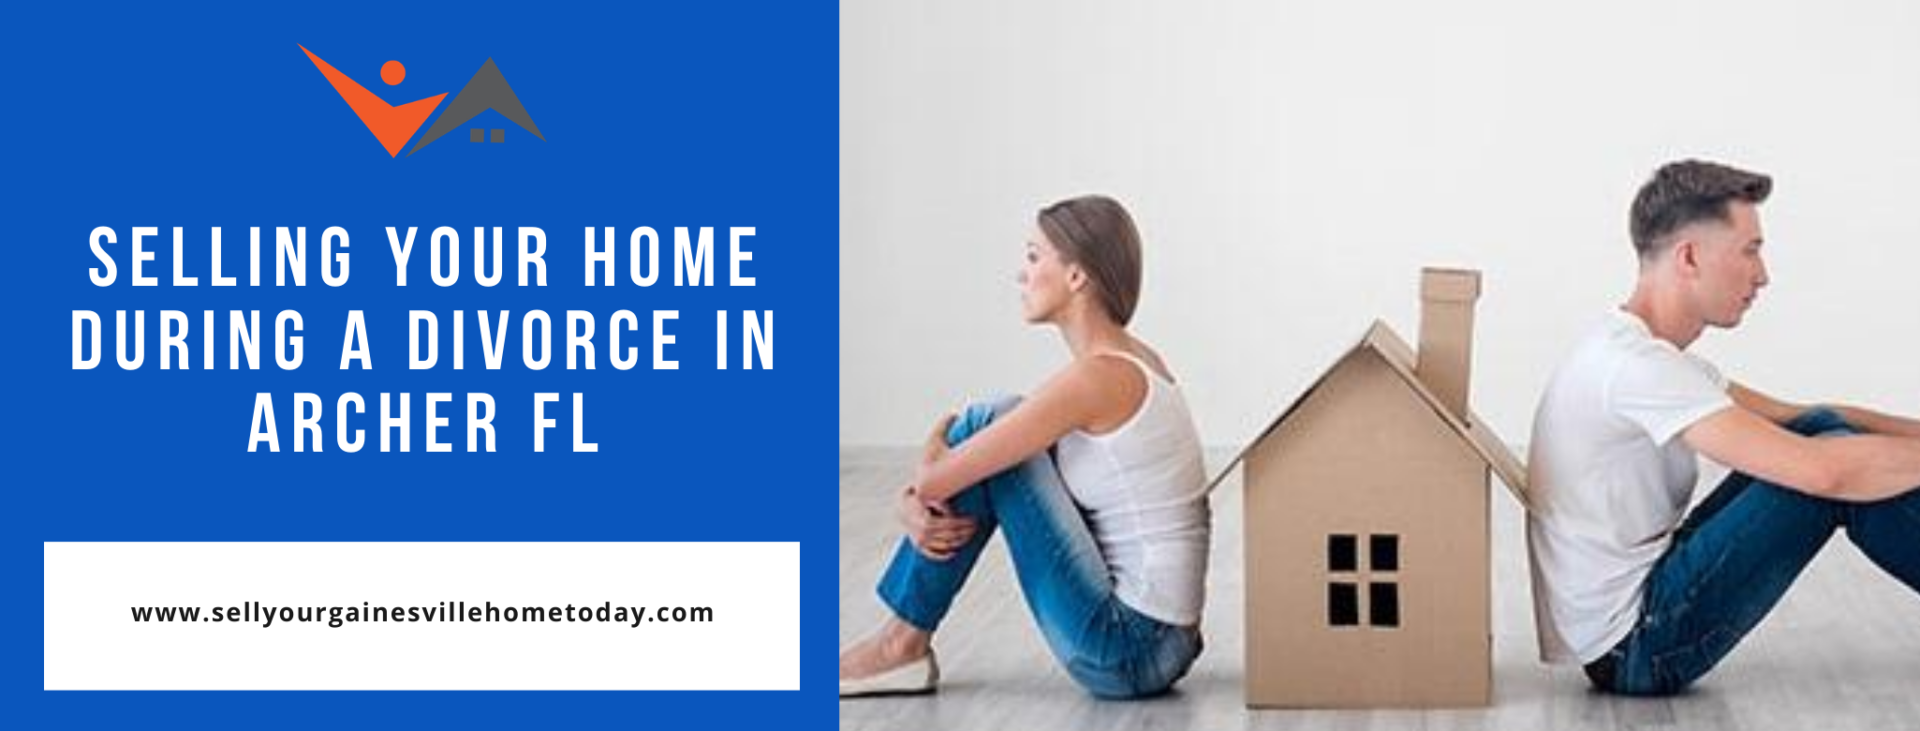 We buy properties in Selling Your Home During a Divorce in Archer FL